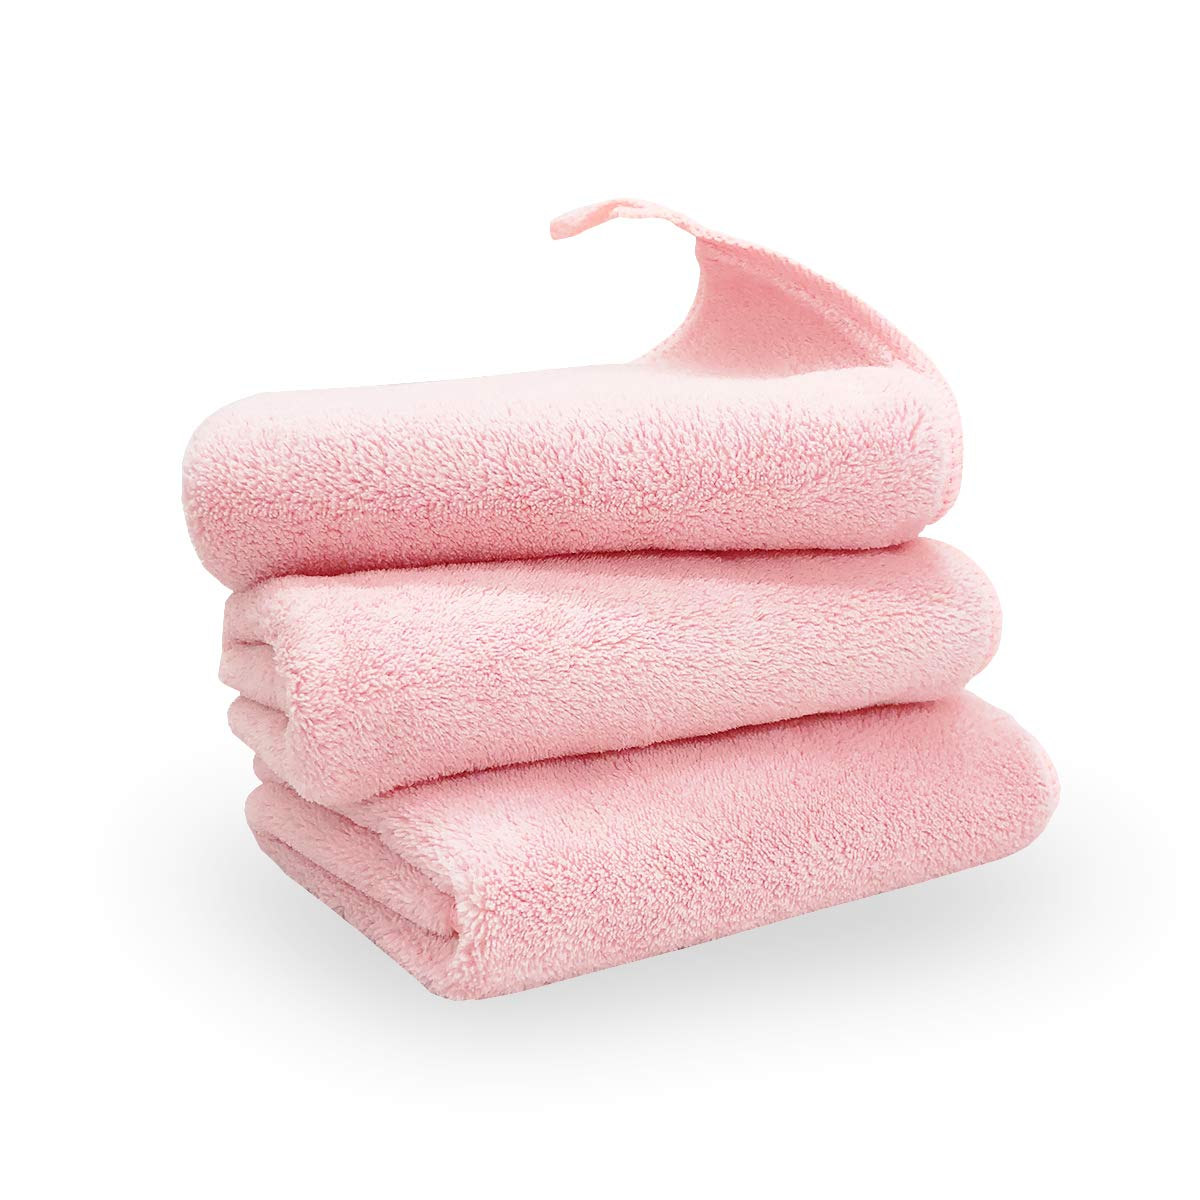 3 Pack, Baby Washcloths, 14x14 Inches, Microfiber Coral Fleece Extra Absorbent and Soft, Perfect Cloth for Sensitive Skin of All Age -Pink